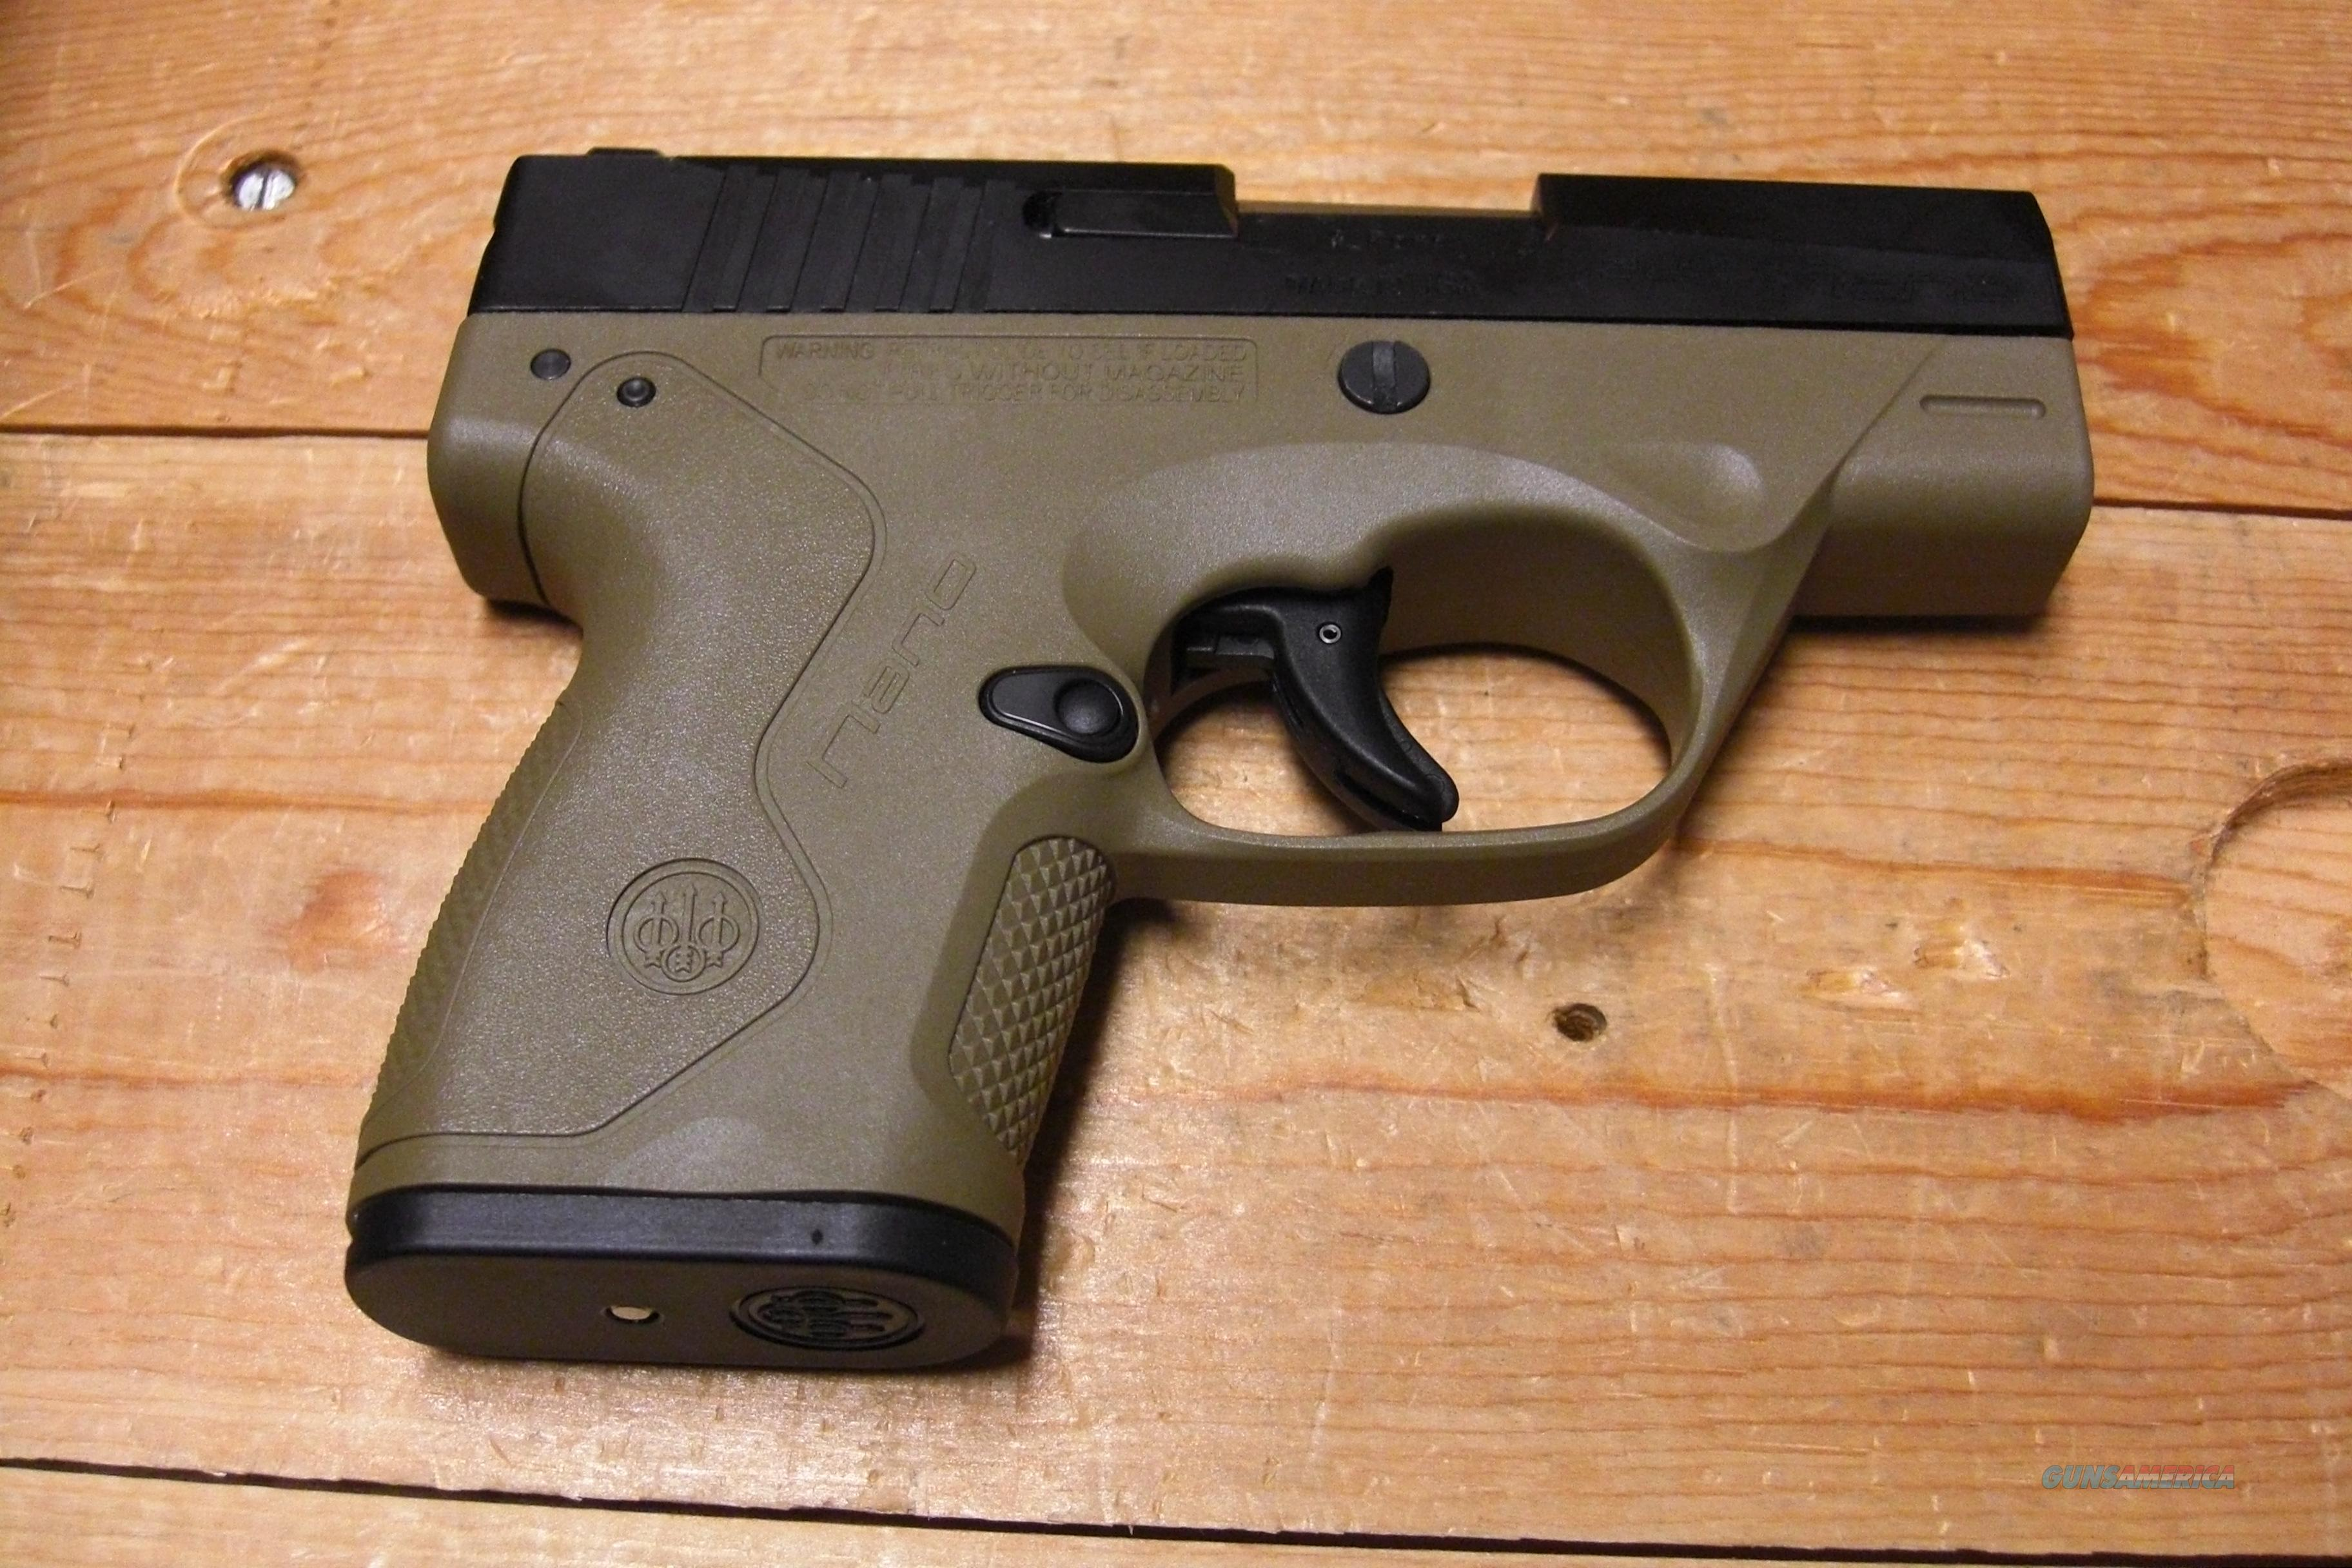 Nano w/FDE frame, comes with 3 mags.  Guns > Pistols > Beretta Pistols > Polymer Frame